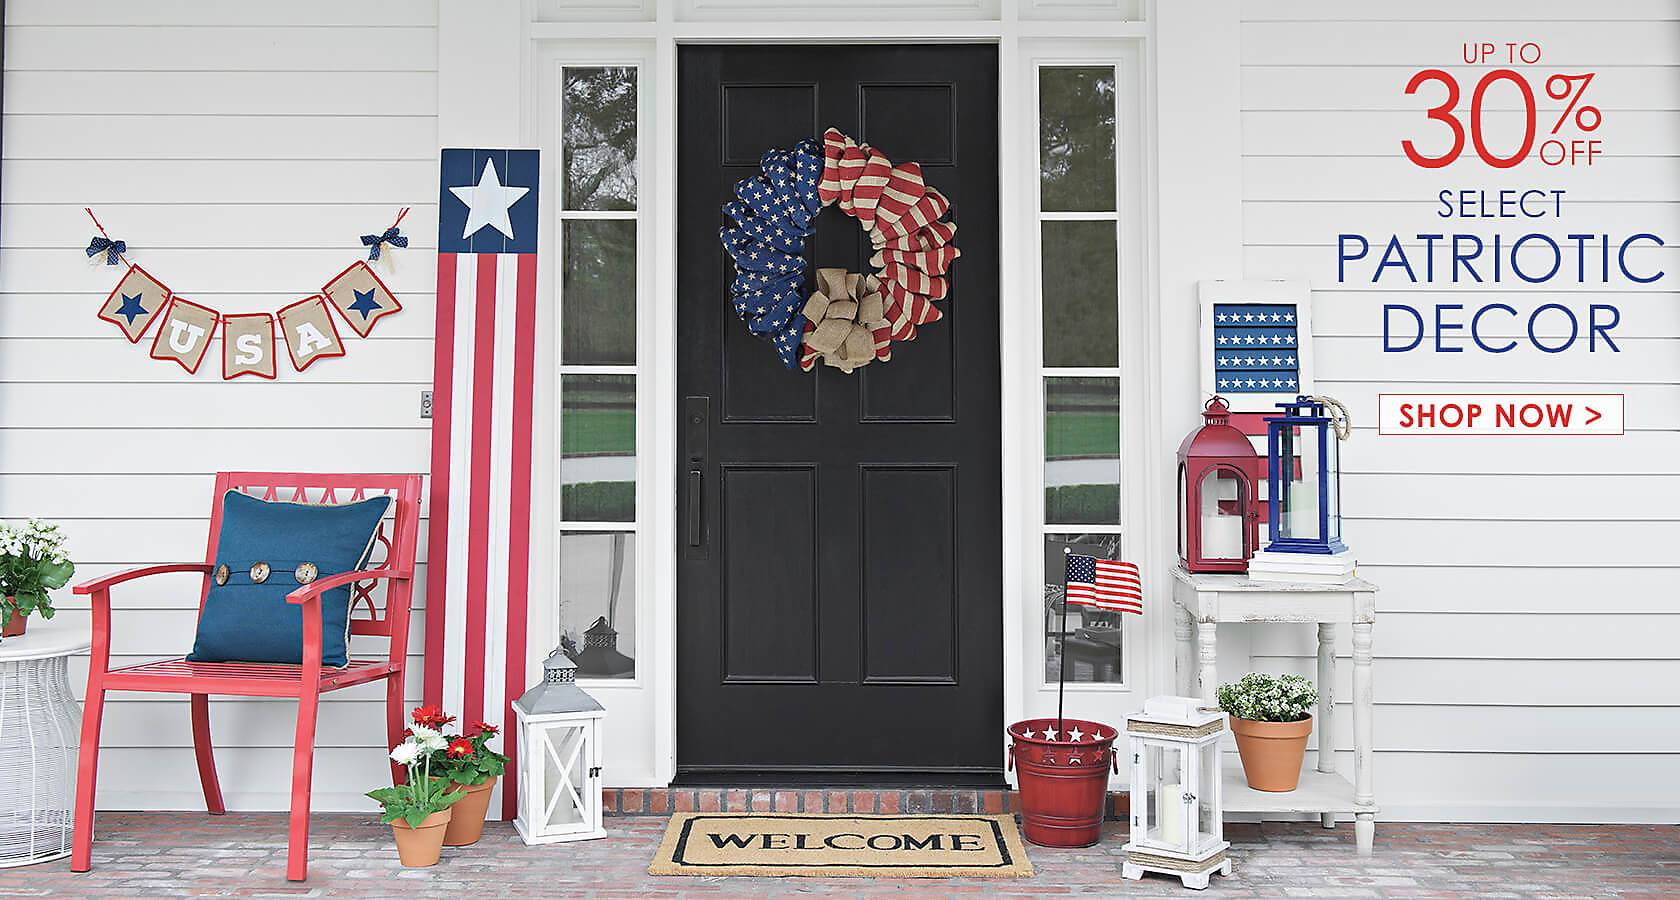 Show Us Your Stars and Stripes - Shop Now